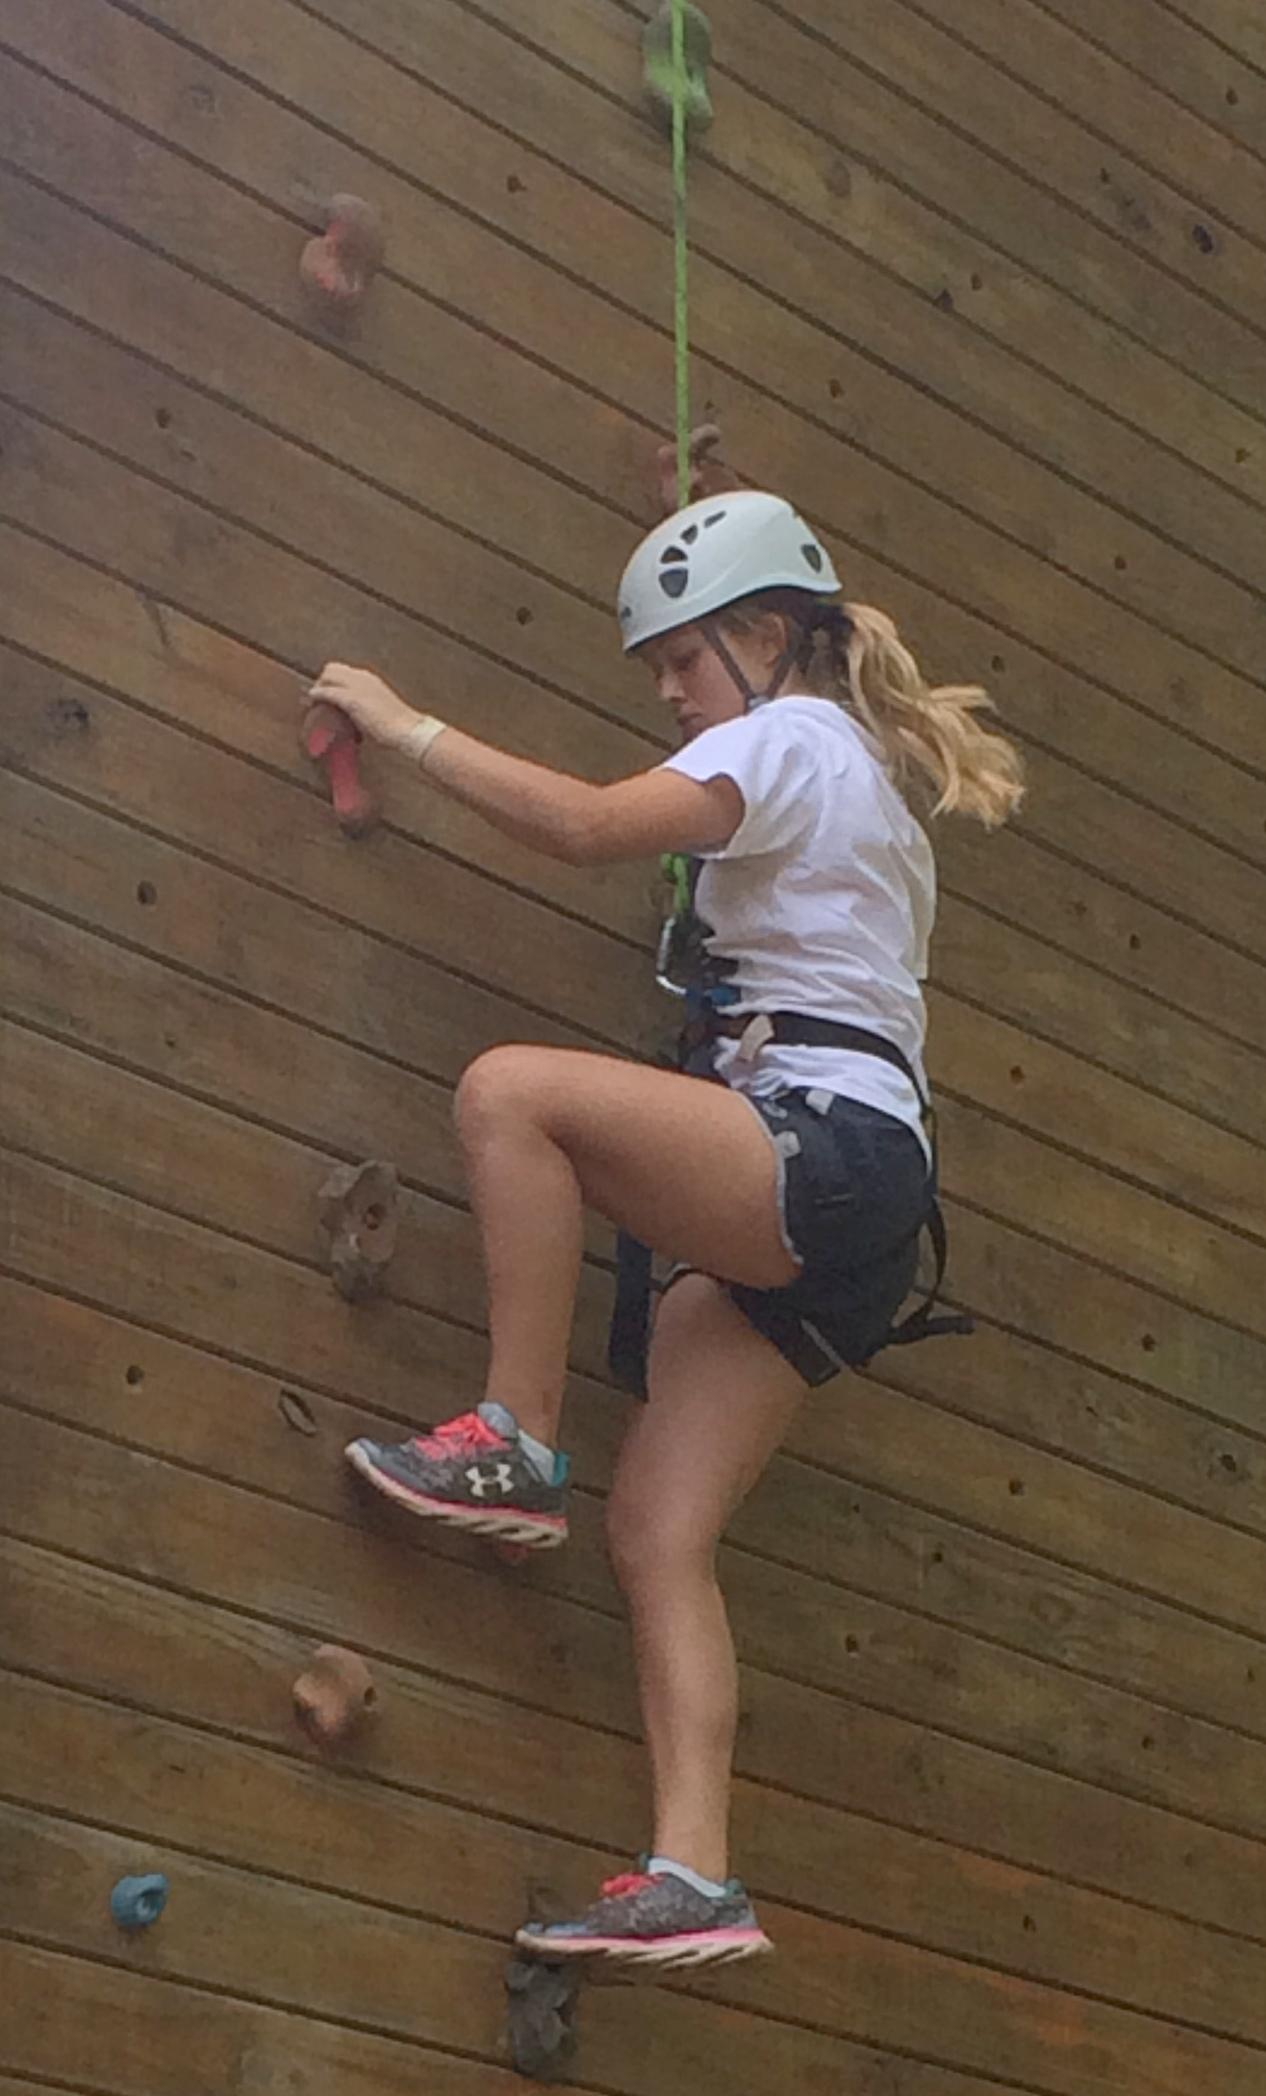 Rock Wall Climbing at 4-H Camp